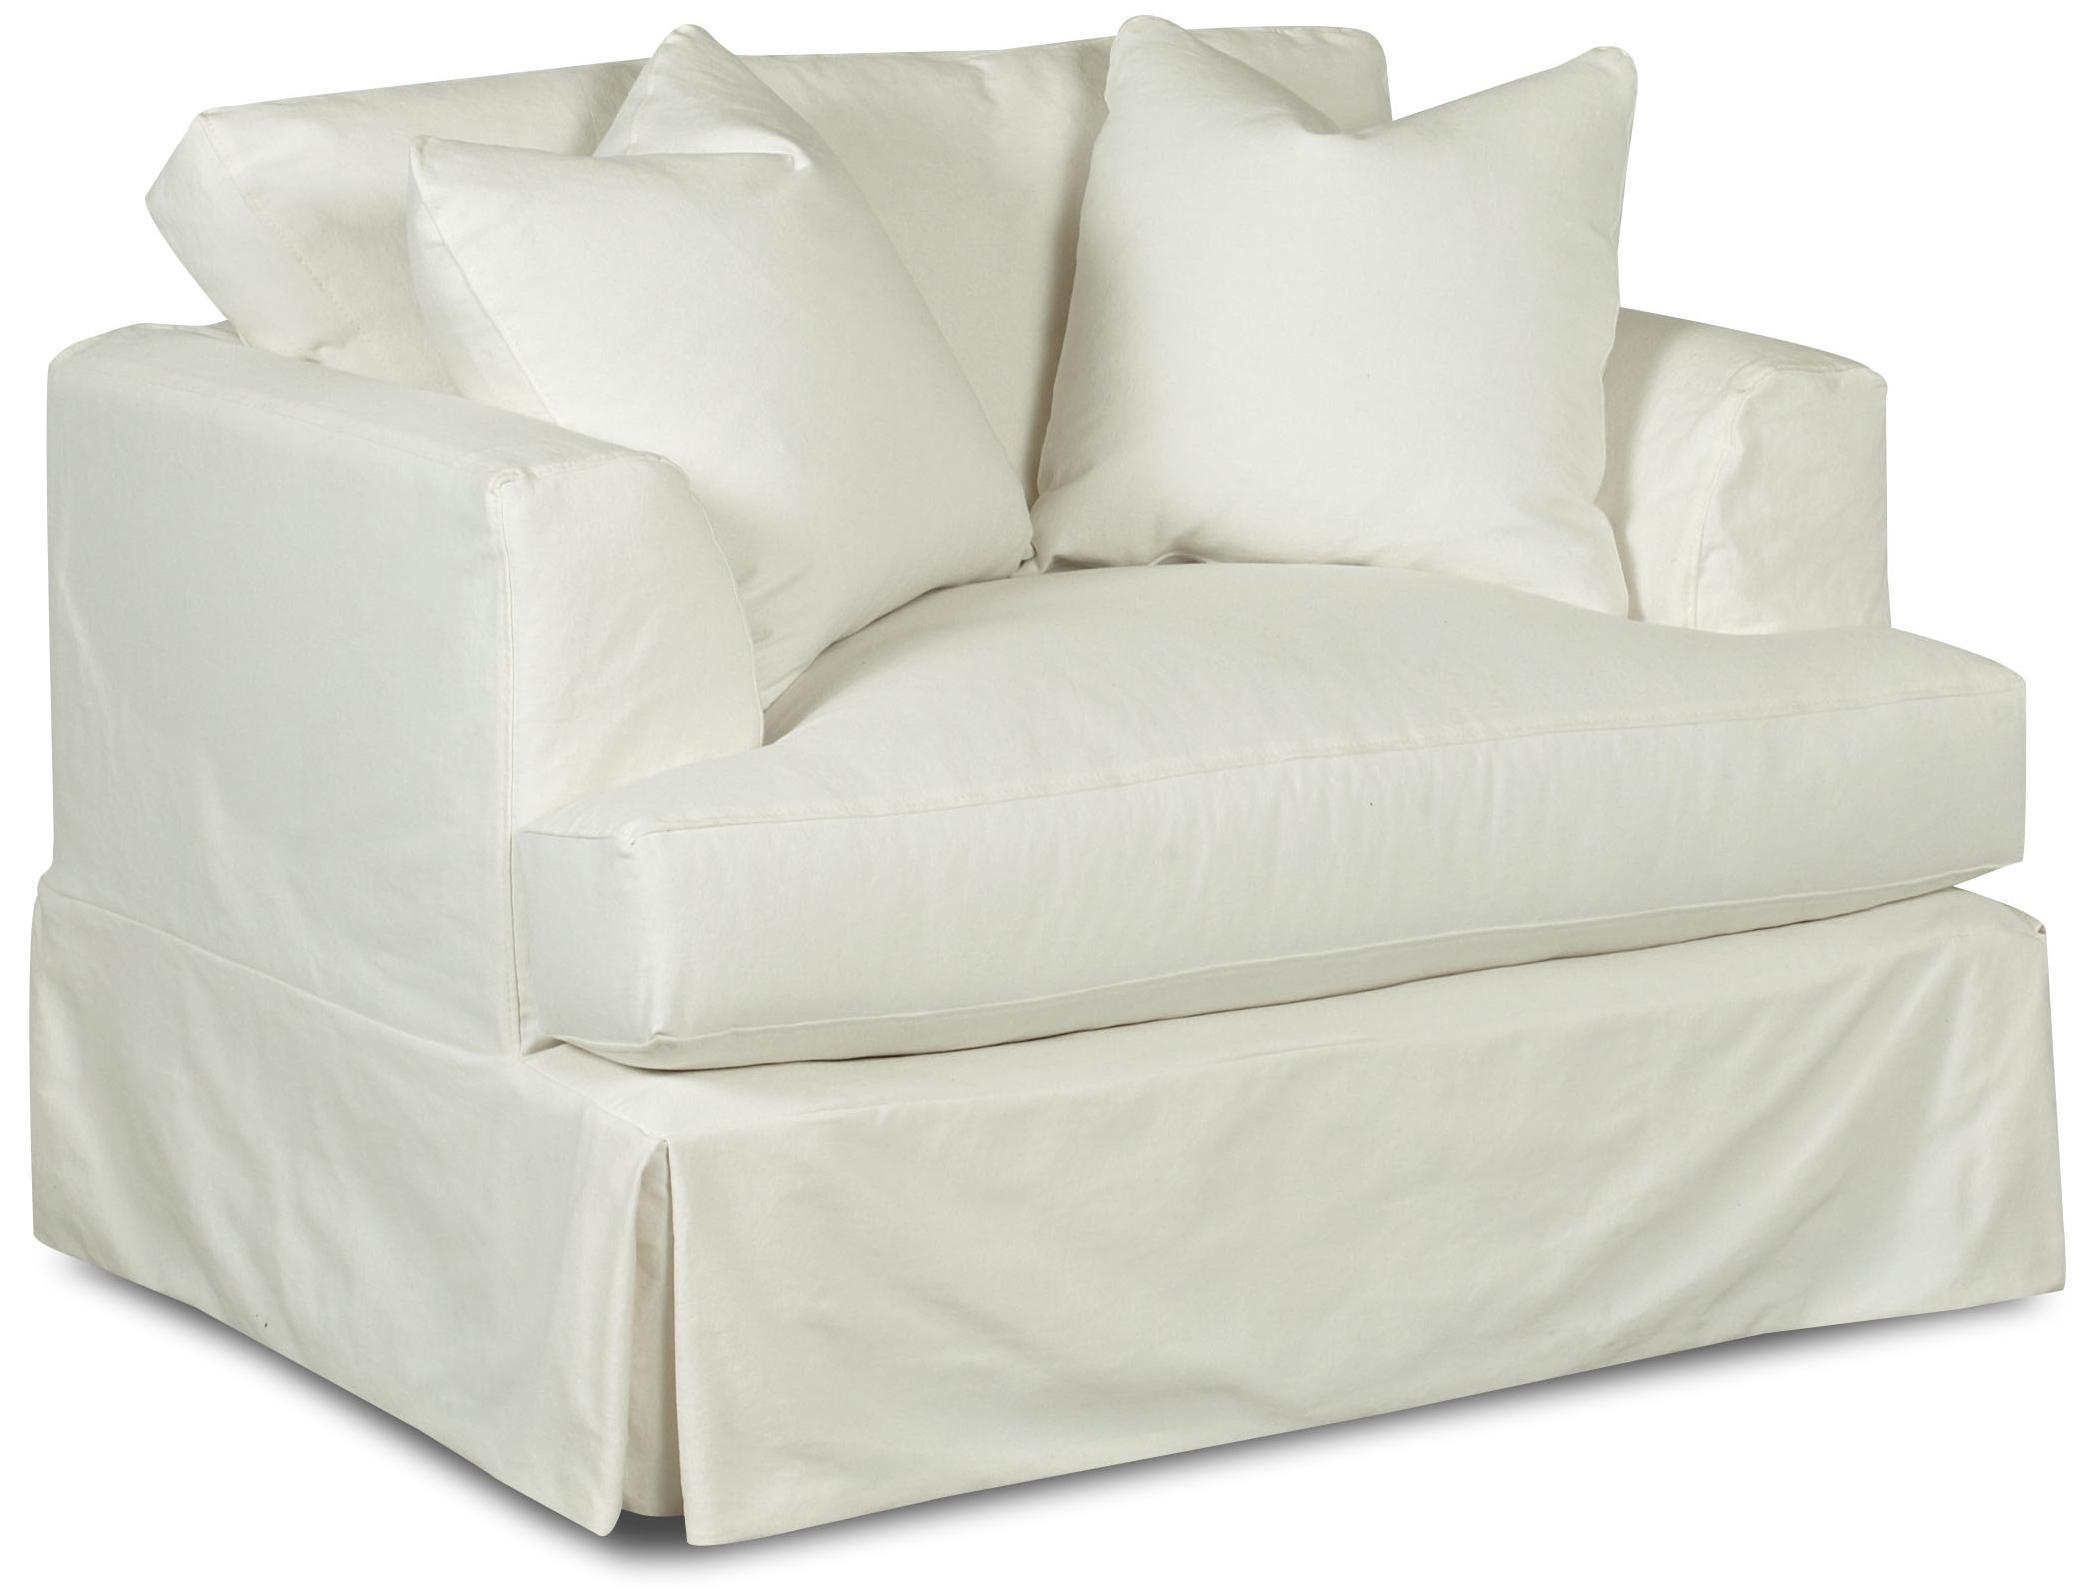 Overstuffed Chair And Ottoman 20 Best Overstuffed Sofas And Chairs Sofa Ideas